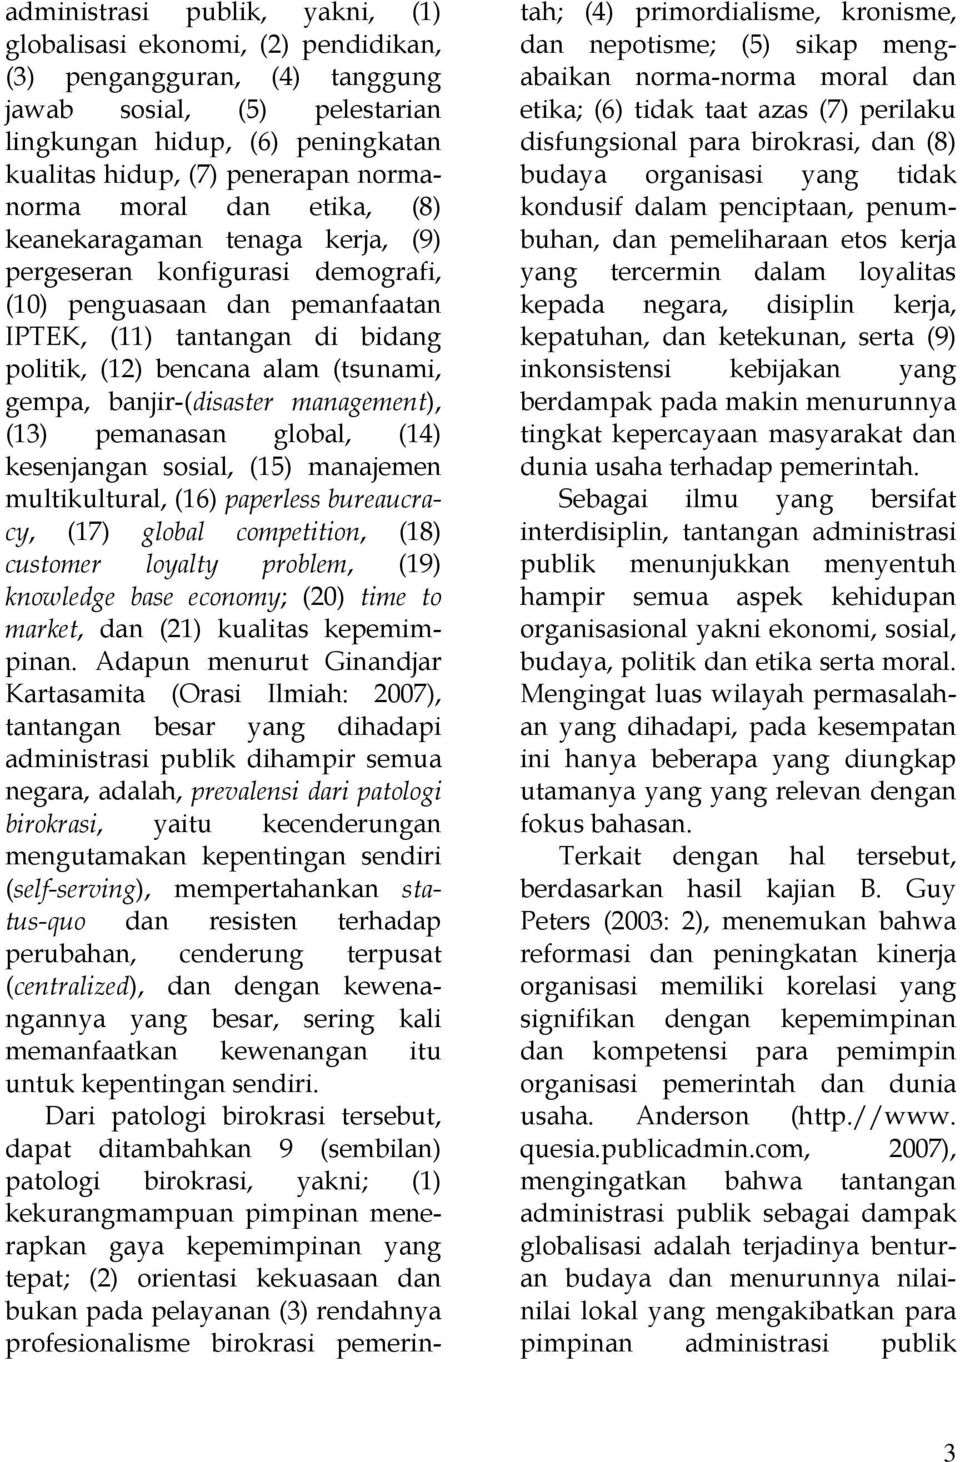 gempa, banjir-(disaster management), (13) pemanasan global, (14) kesenjangan sosial, (15) manajemen multikultural, (16) paperless bureaucracy, (17) global competition, (18) customer loyalty problem,